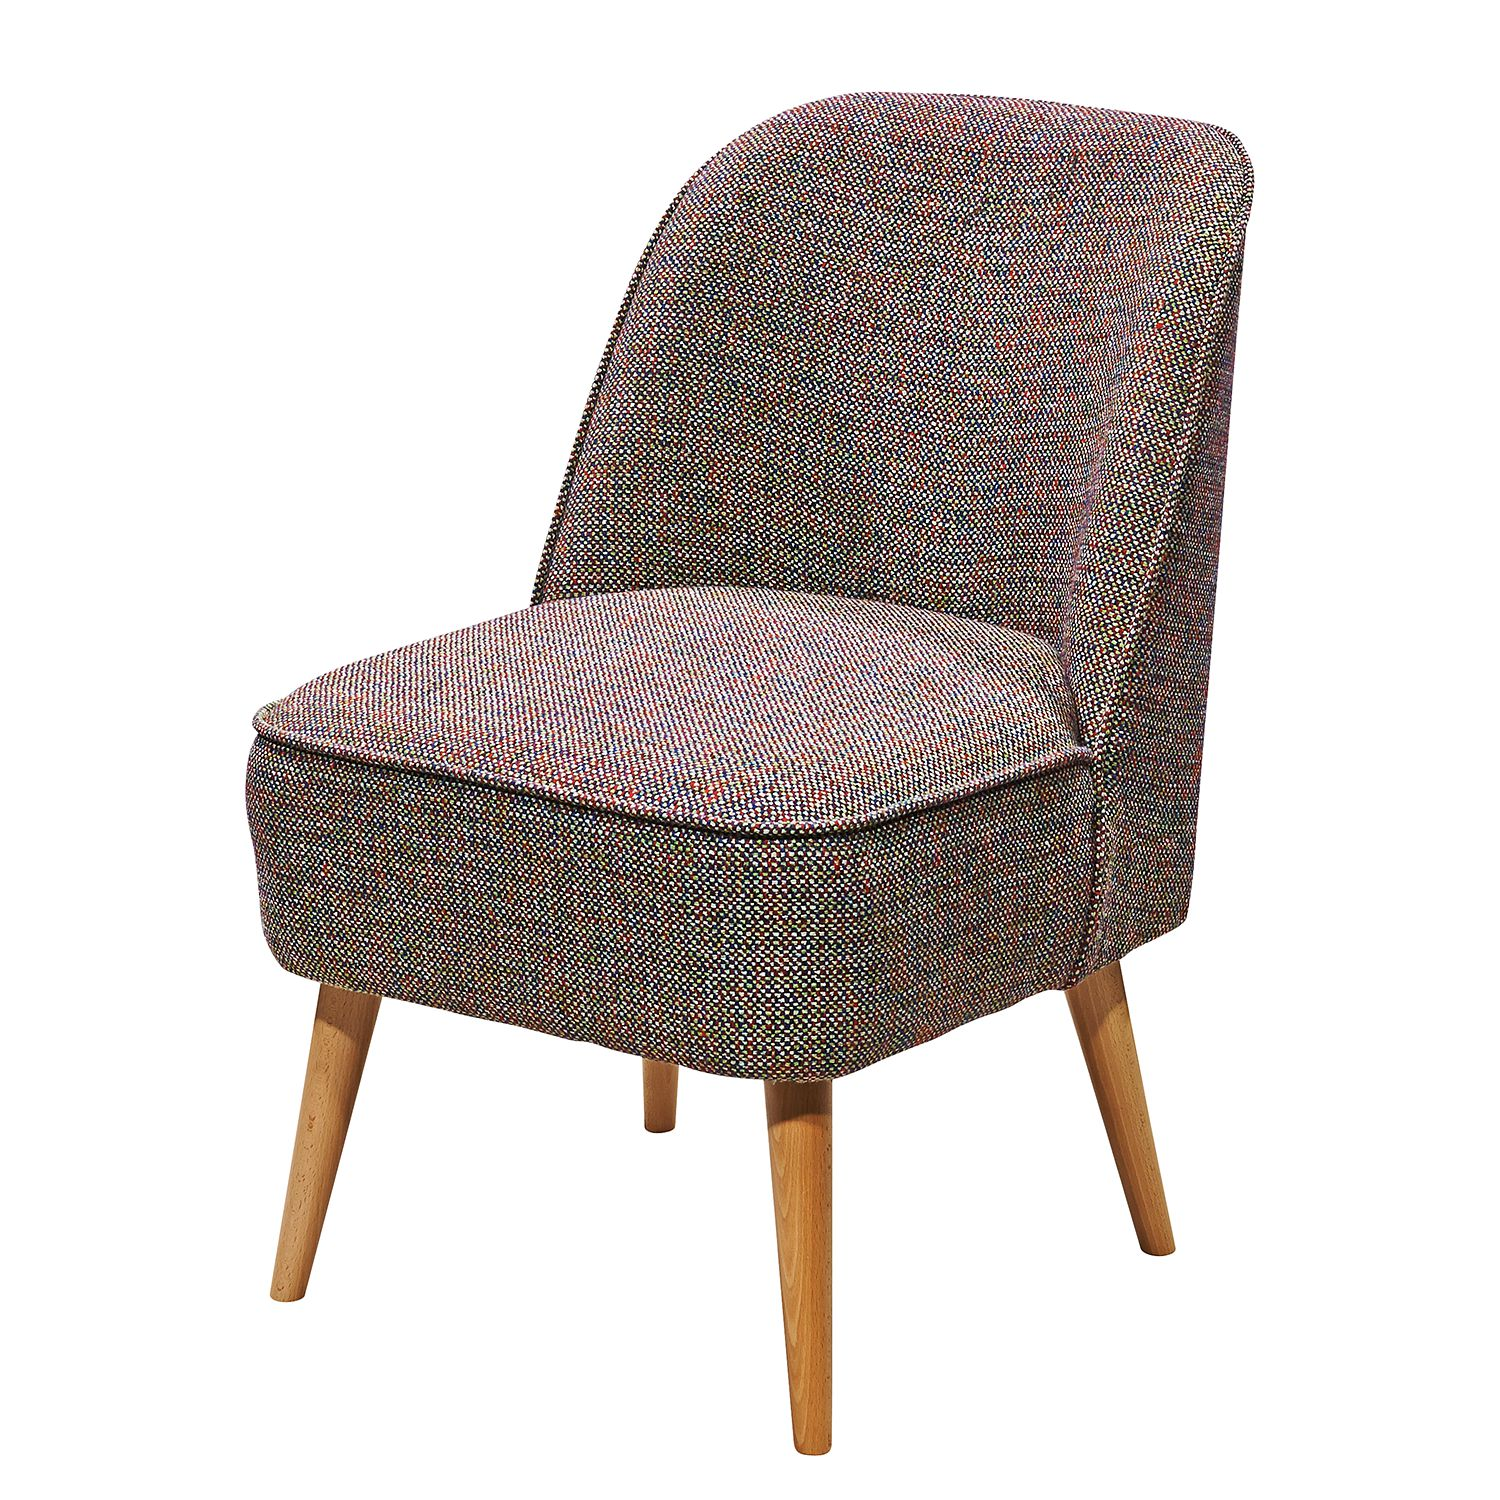 Fauteuil Capain - Tissu - Multicolore, mooved